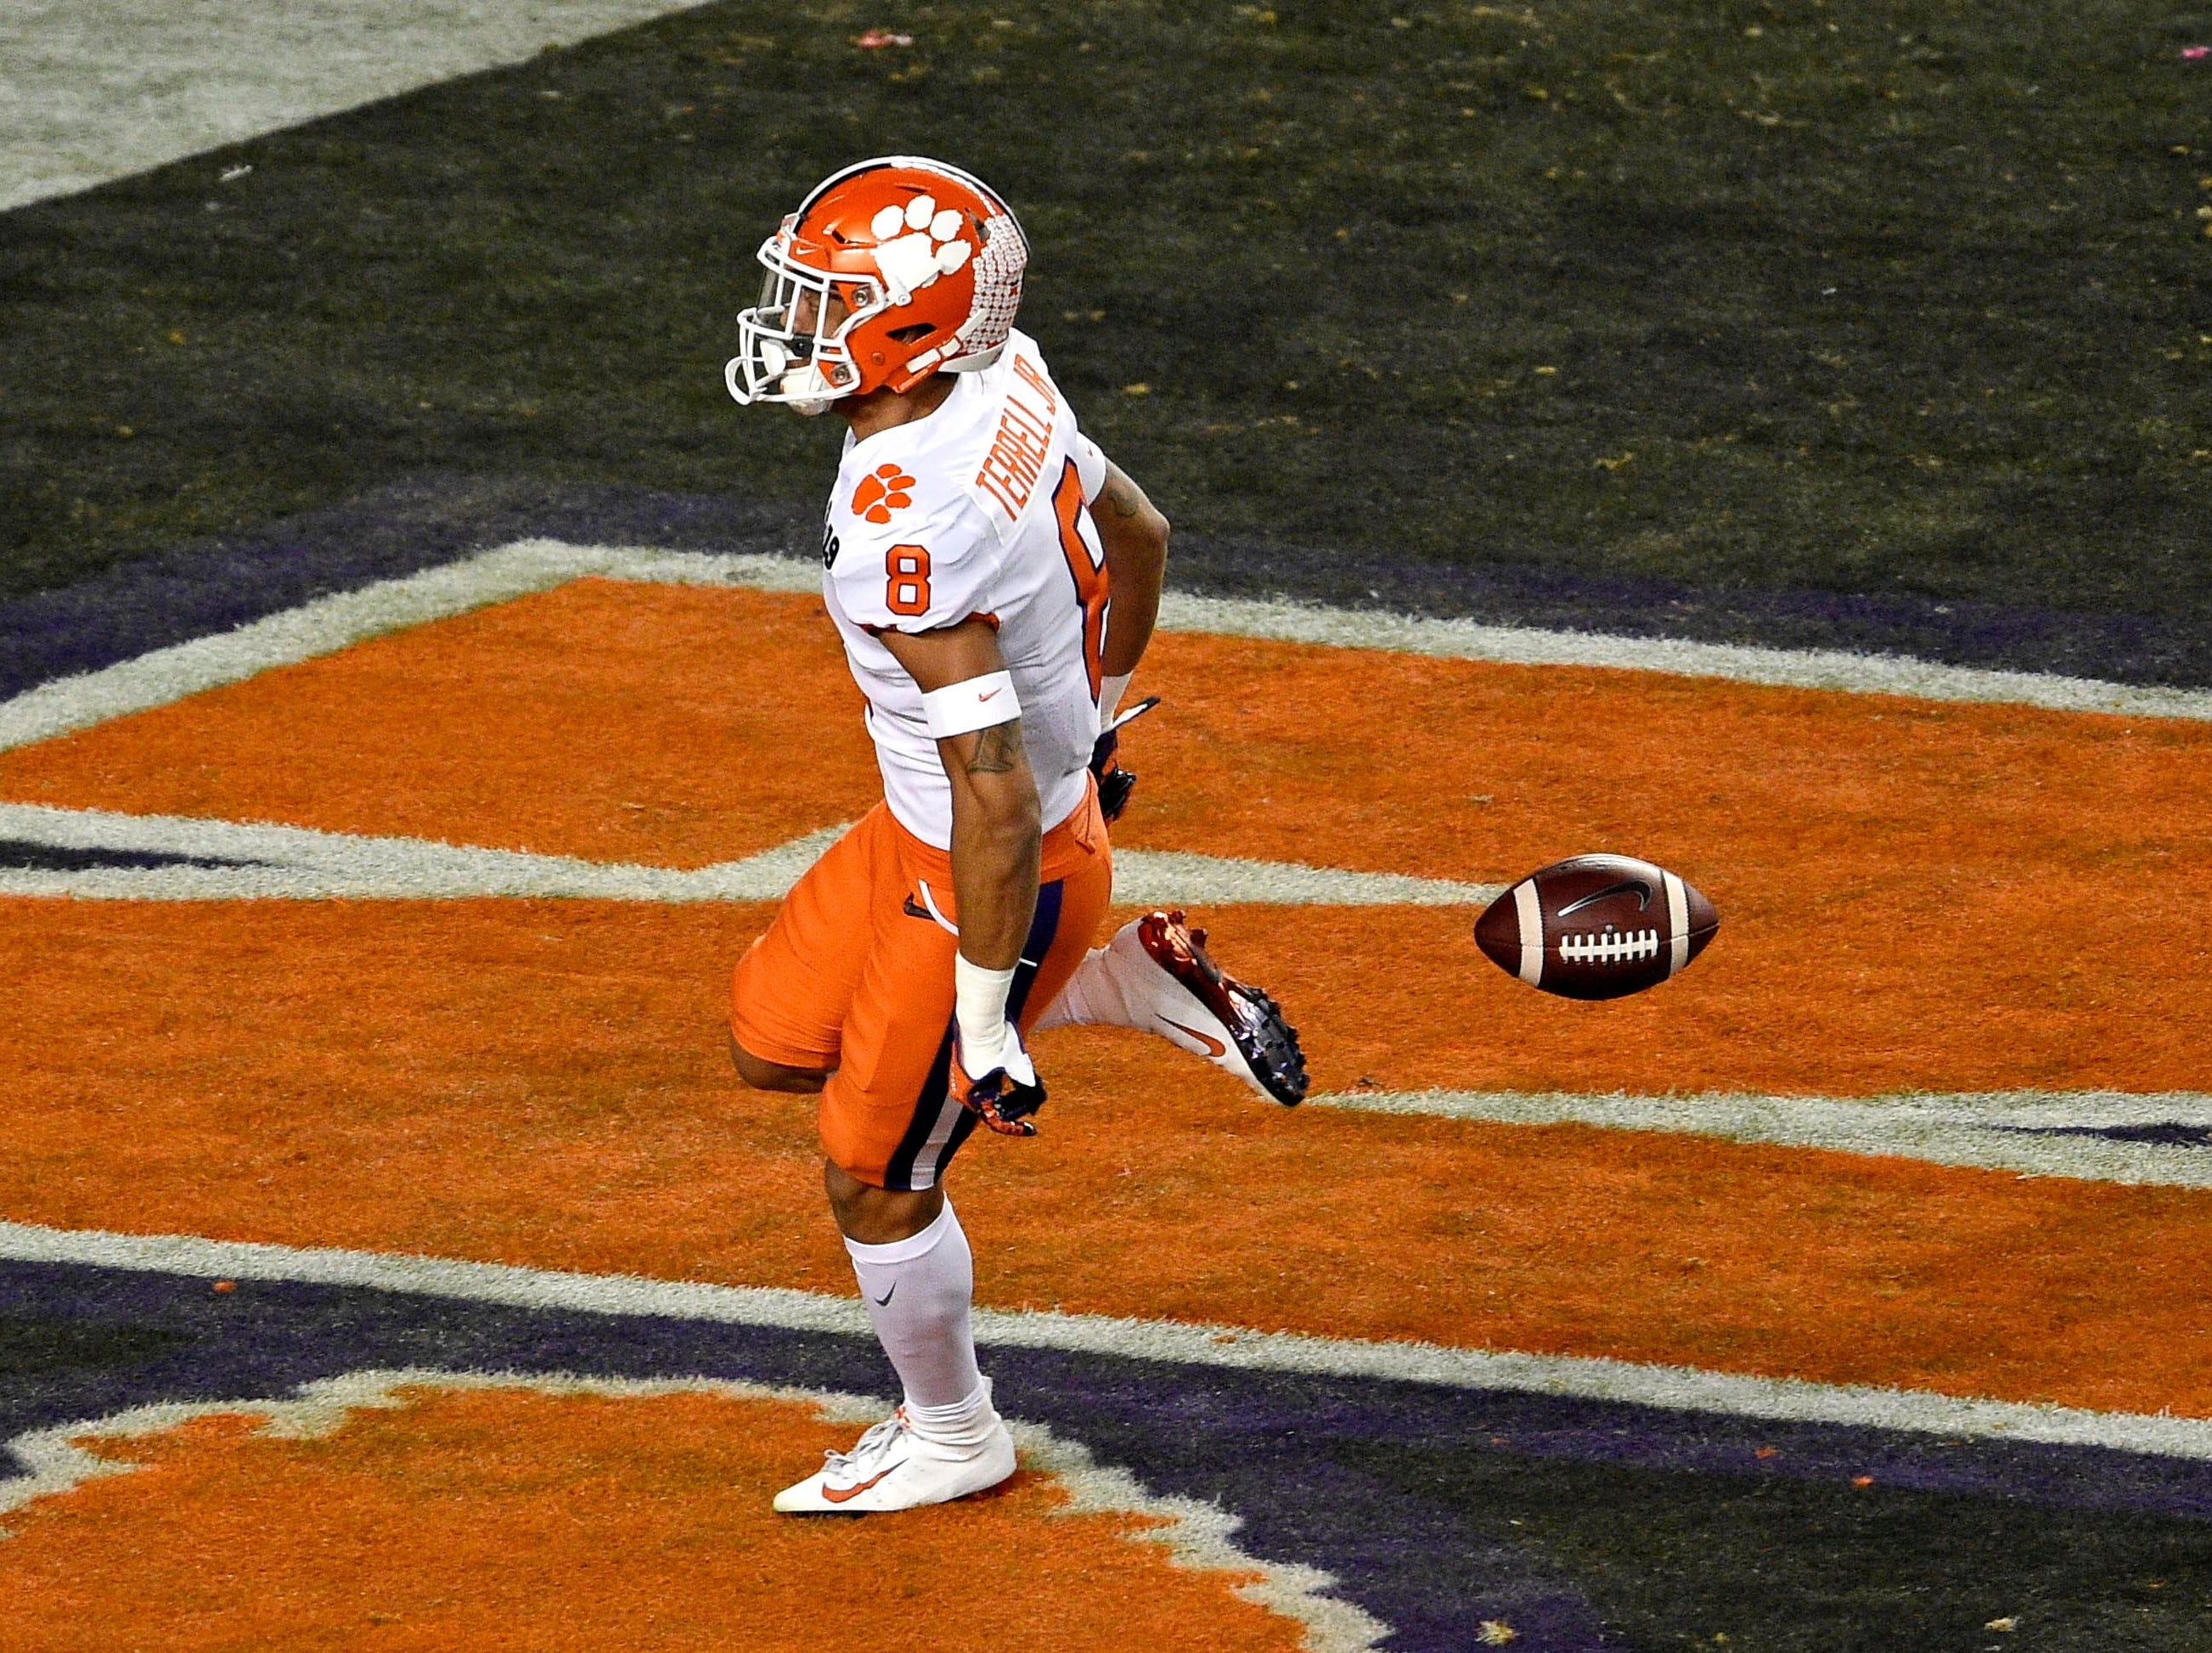 Jan 7, 2019; Santa Clara, CA, USA; Clemson Tigers cornerback A.J. Terrell (8) runs a interception for a touchdown against the Alabama Crimson Tide during the first quarter during the 2019 College Football Playoff Championship game at Levi's Stadium. Mandatory Credit: Kelvin Kuo-USA TODAY Sports